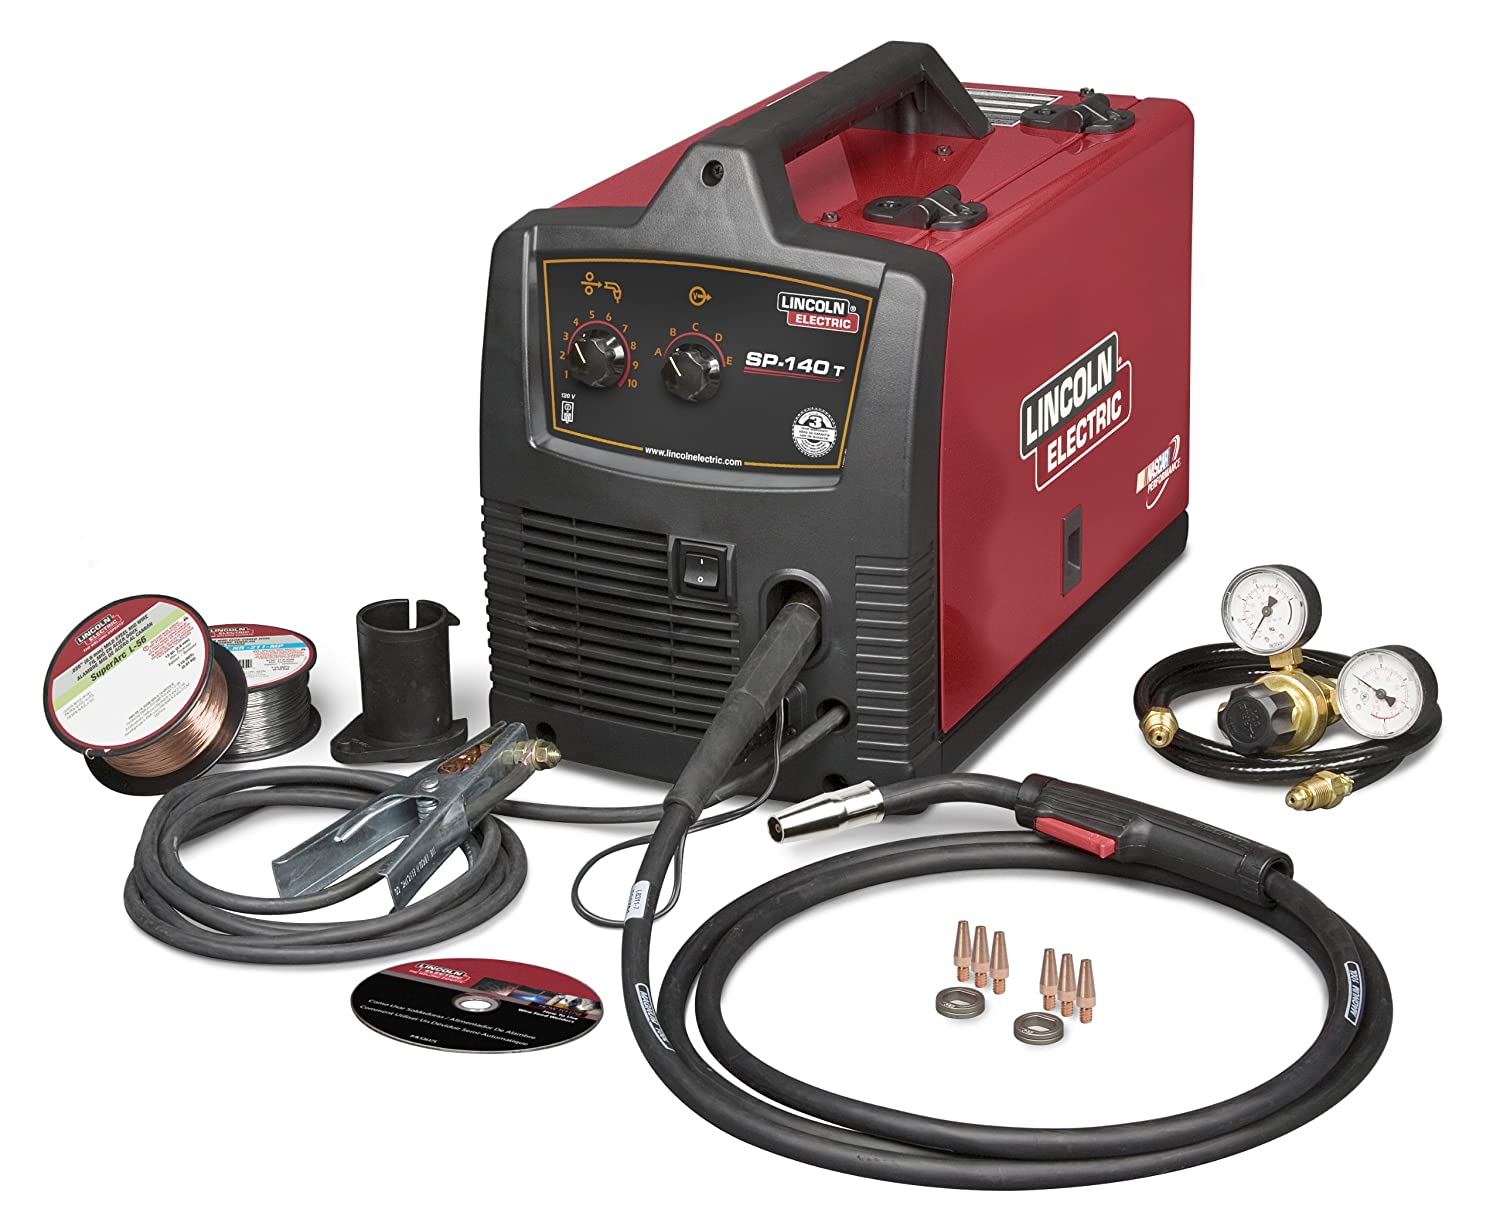 Lincoln Sp 140t Wire Feed Welder K2688 1 Ac Dc Arc Welding 110 Mig Wiring Diagram Equipment